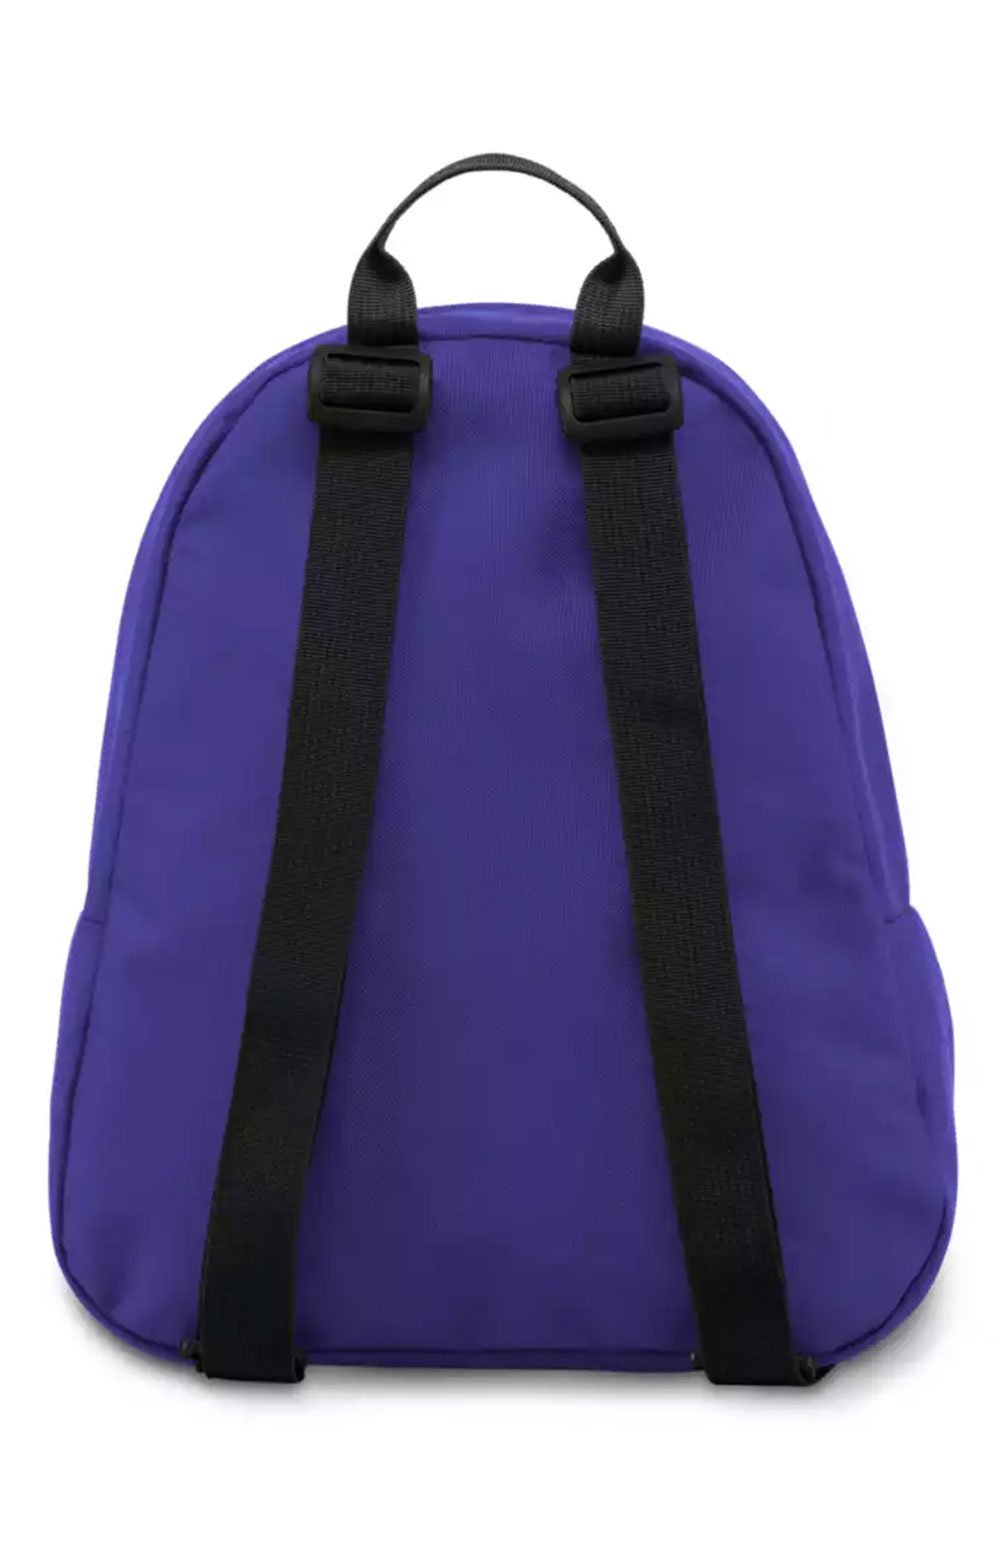 Half Pint Mini Backpack - Violet Purple  2